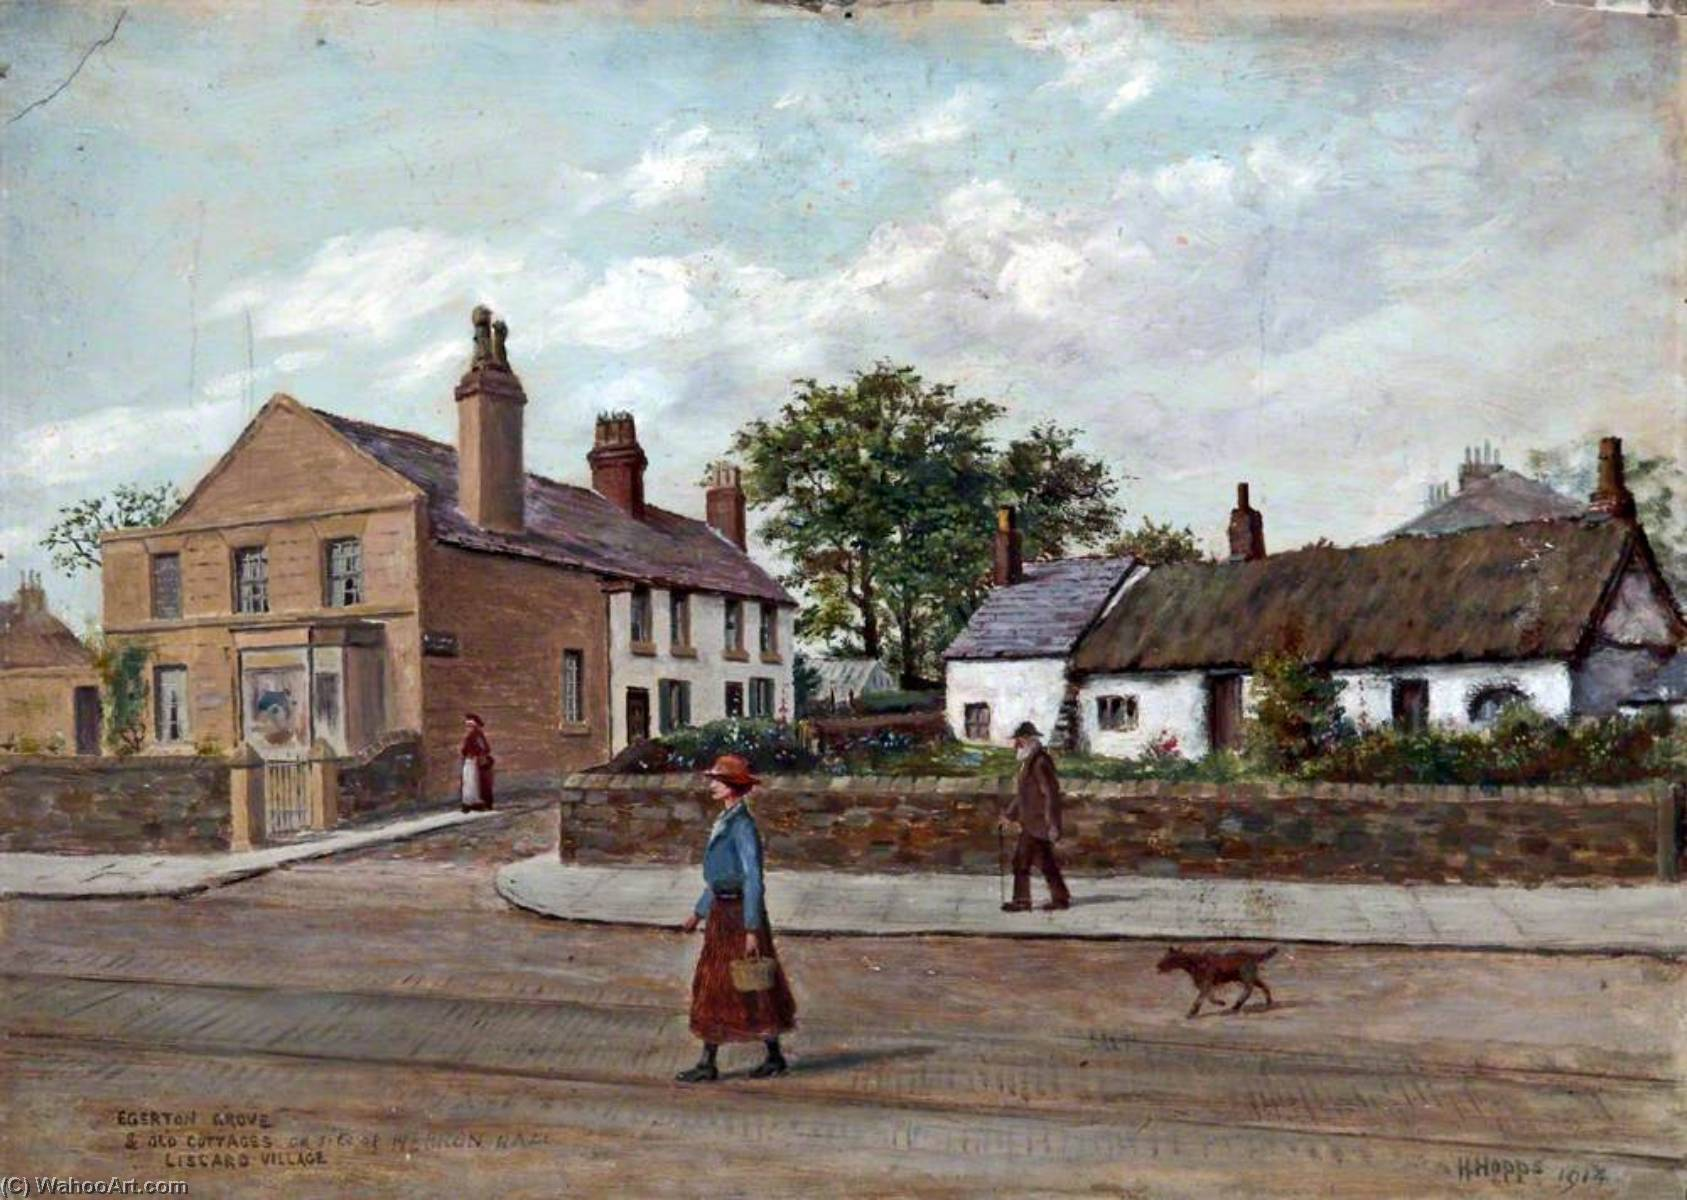 Order Art Reproductions | Egerton Grove and Old Cottages, Liscard Village, Wirral, 1914 by Harold Hopps | WahooArt.com